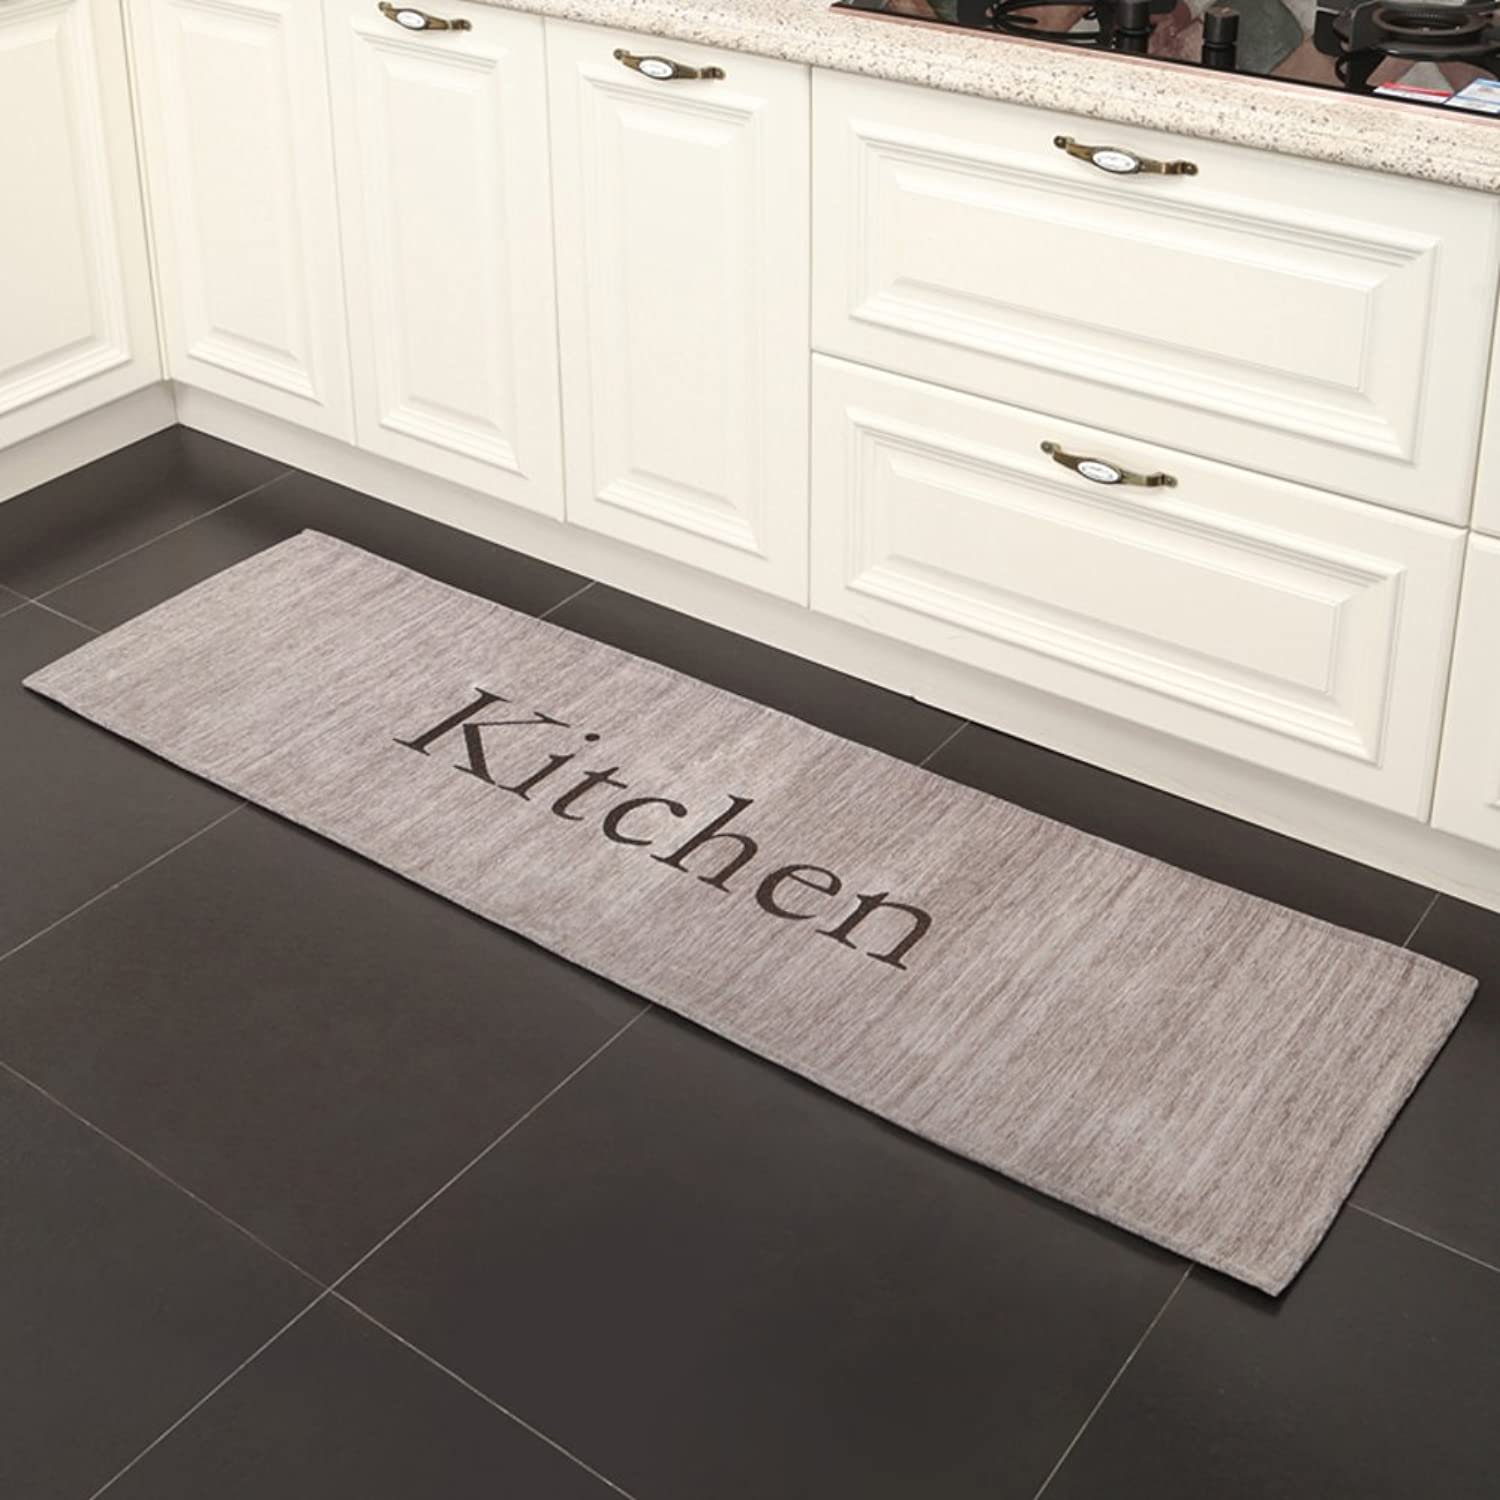 Kitchen Long Water Absorbent Non-Slip Cushion Grey Carpet Durable Small Carpet with Non-Slip-A 50x80cm(20x31inch)